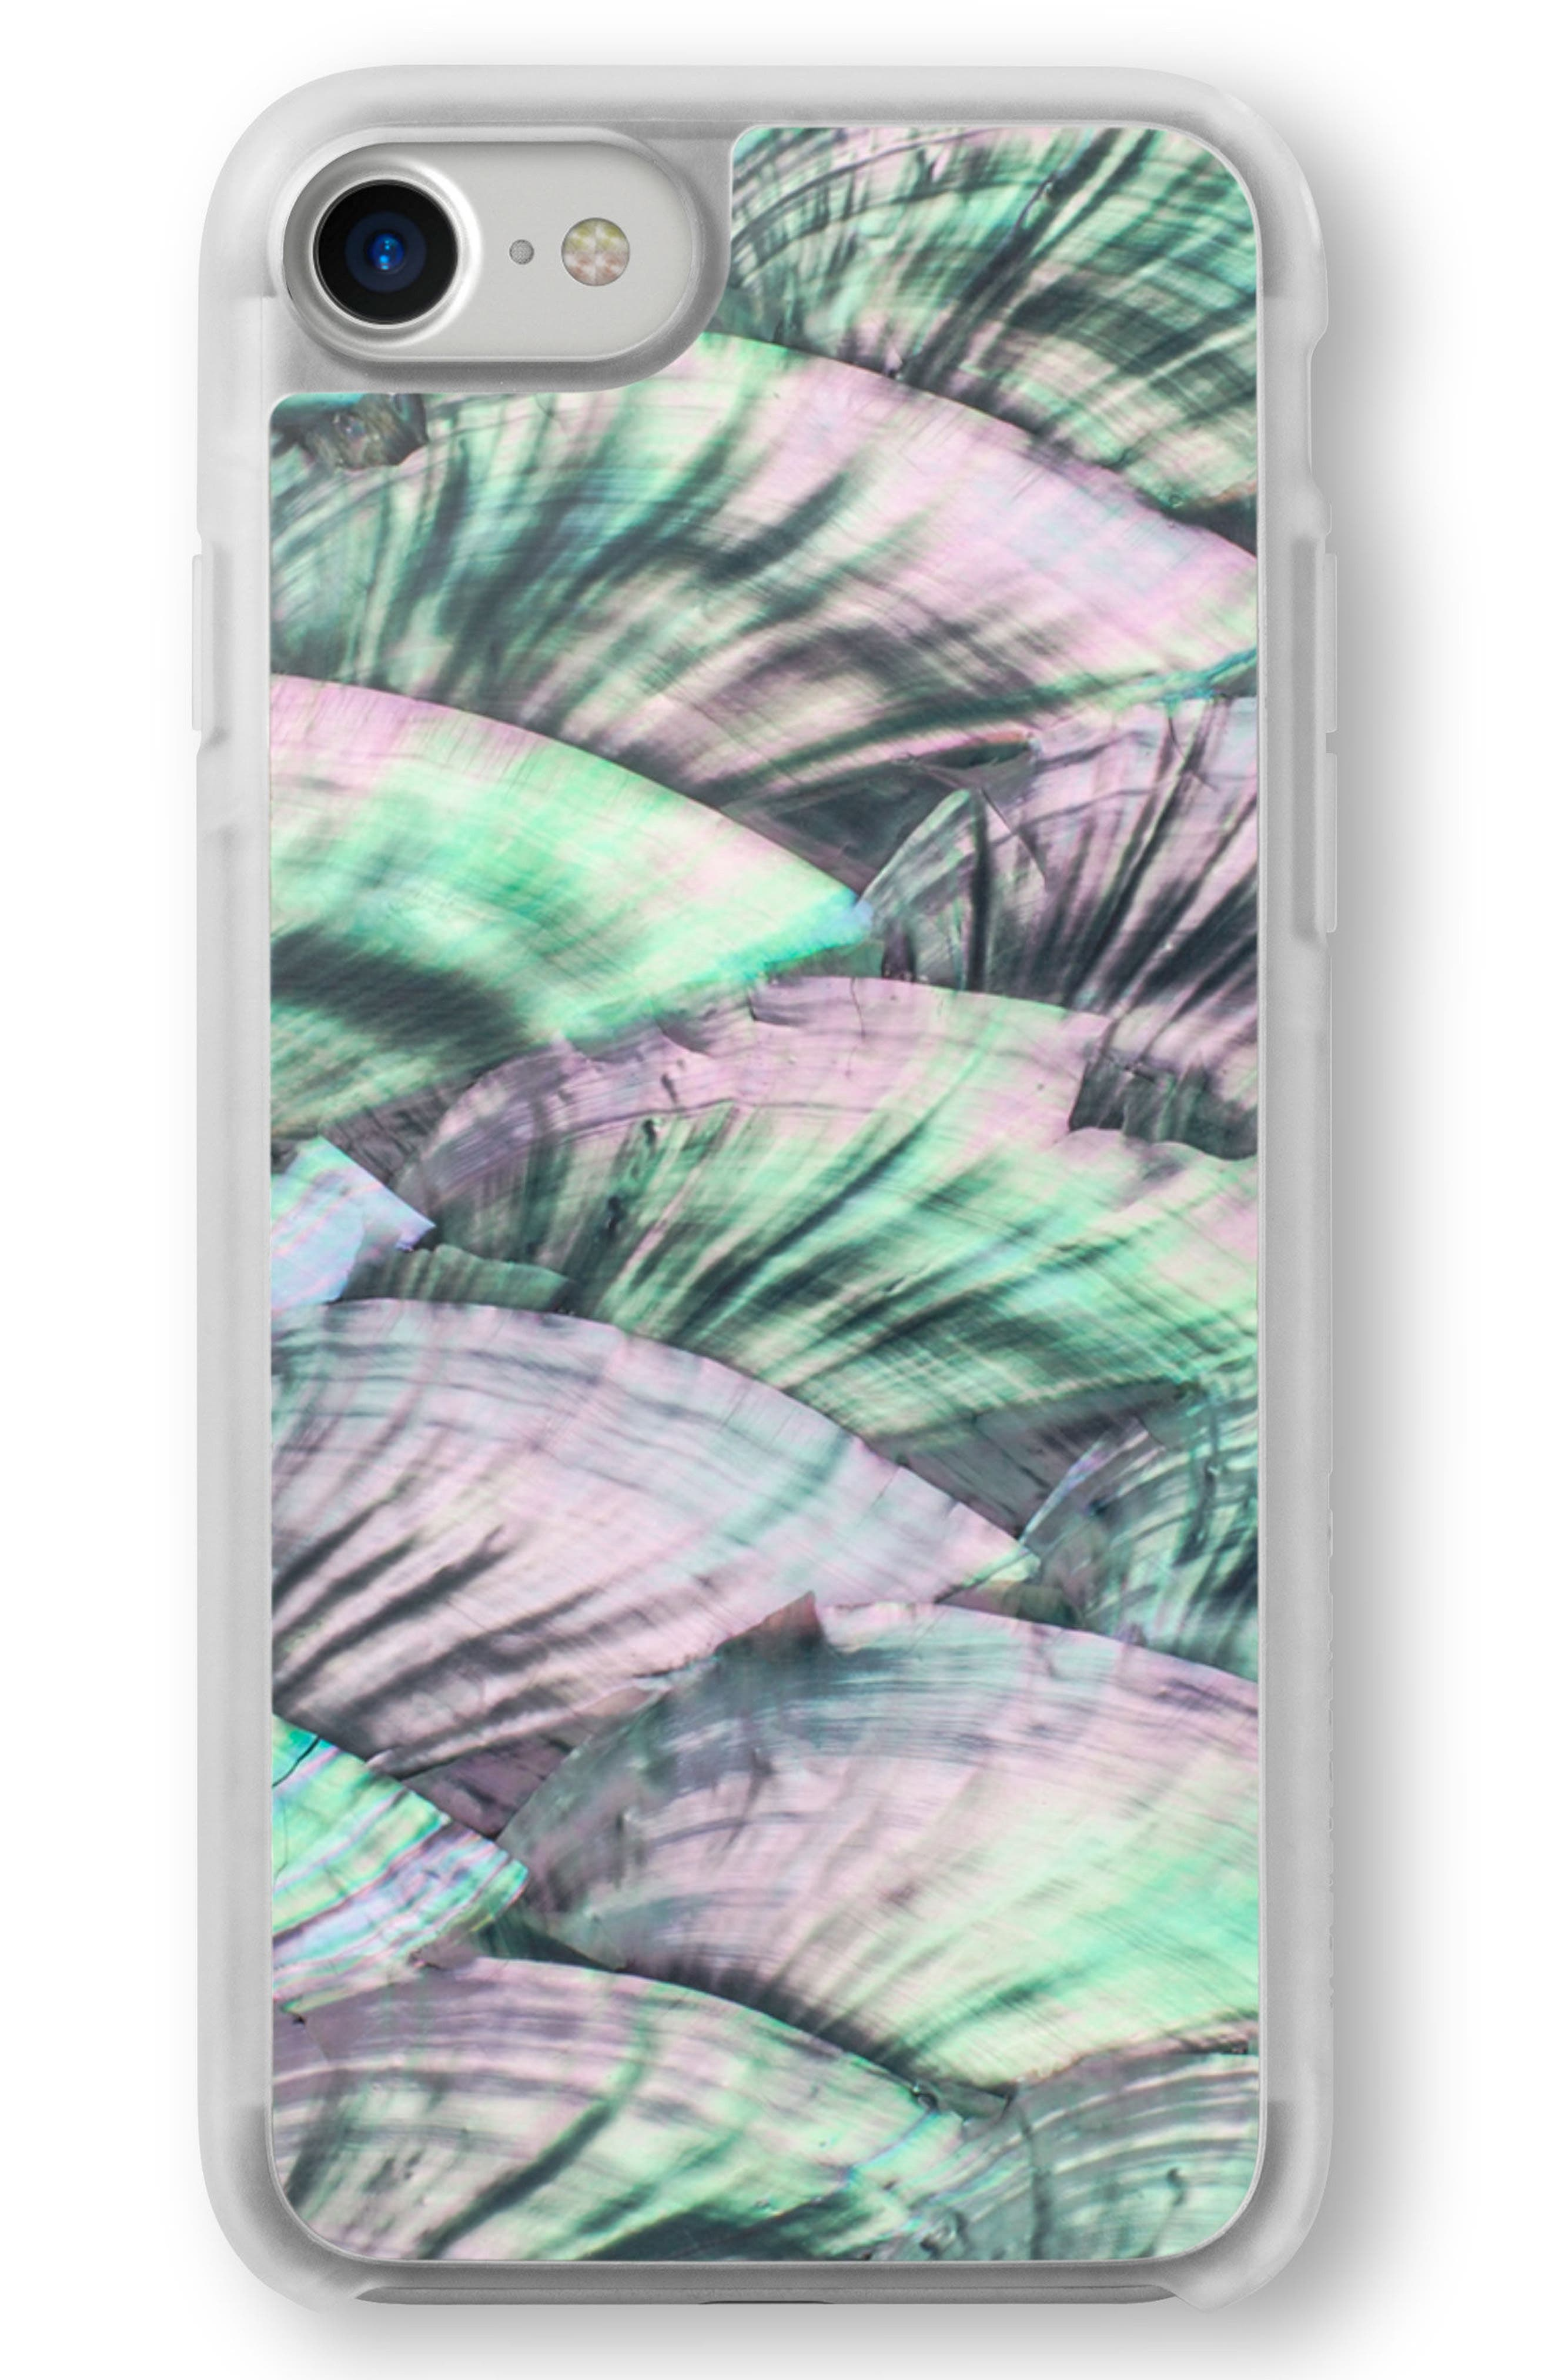 Green Abalone iPhone 6/6s/7/8 & 6/6s/7/8 Plus Case,                             Alternate thumbnail 2, color,